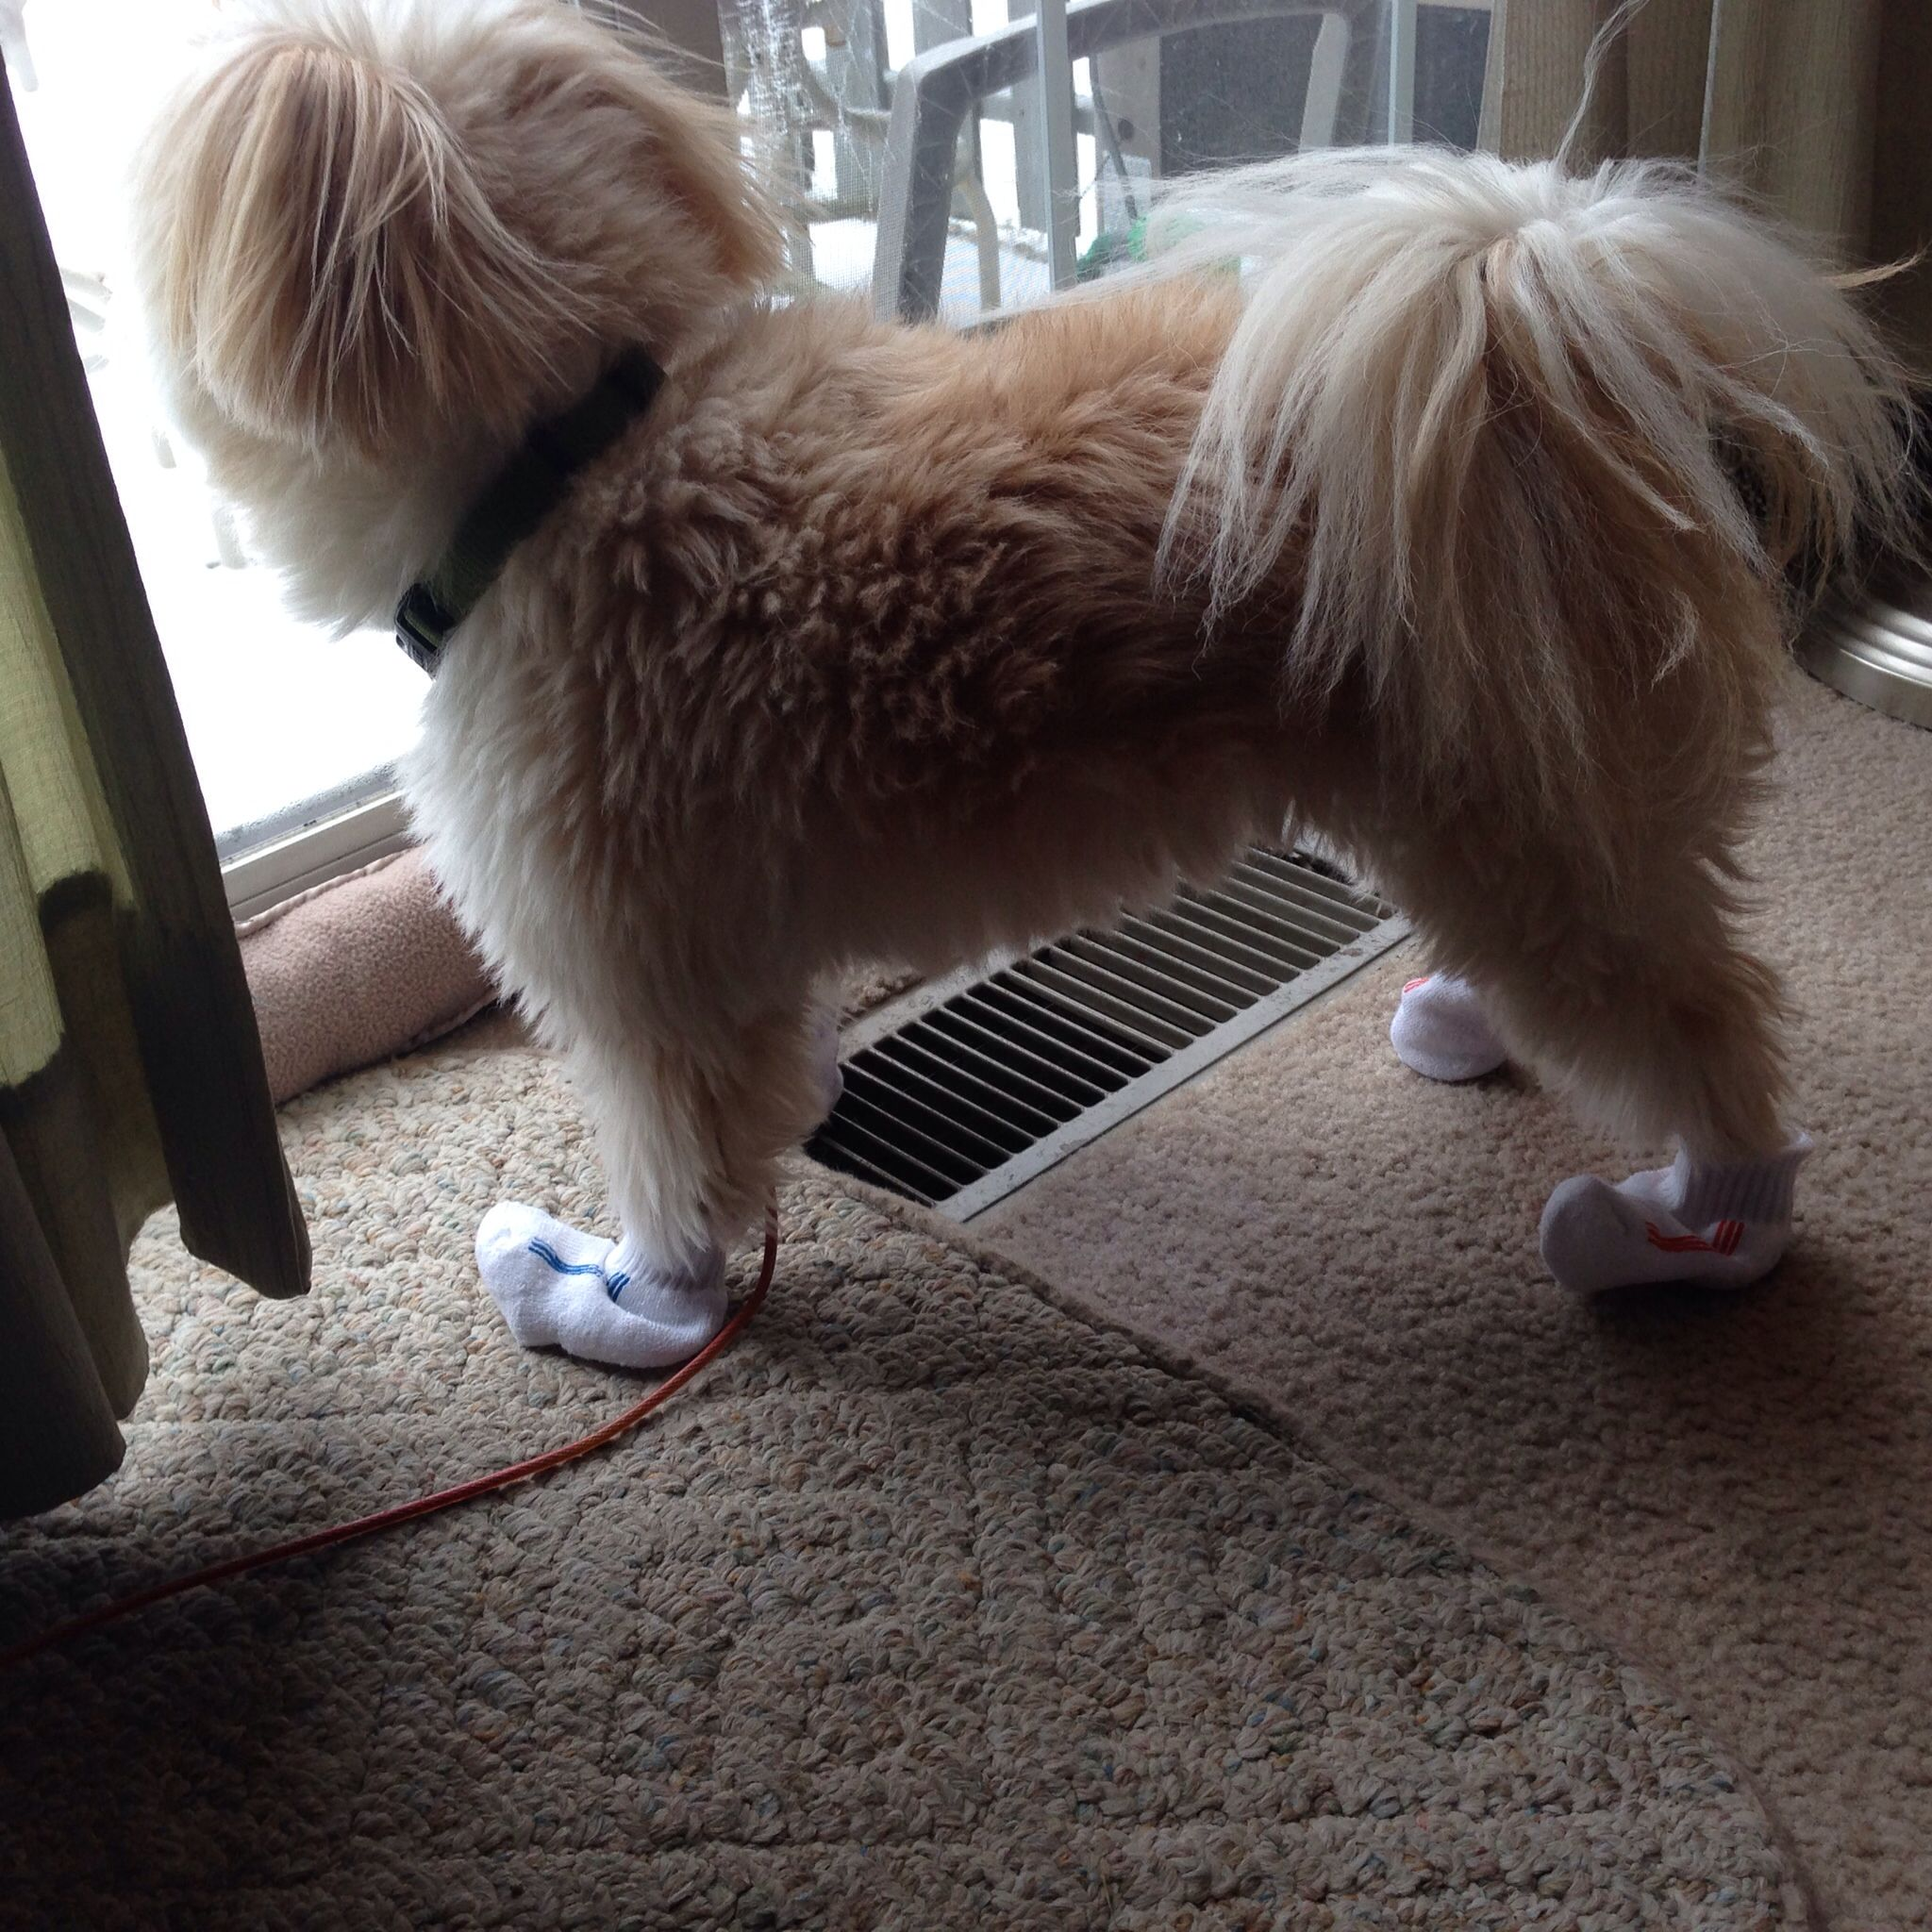 For dogs that won't do booties, baby socks work in a pinch as protection from the ice.